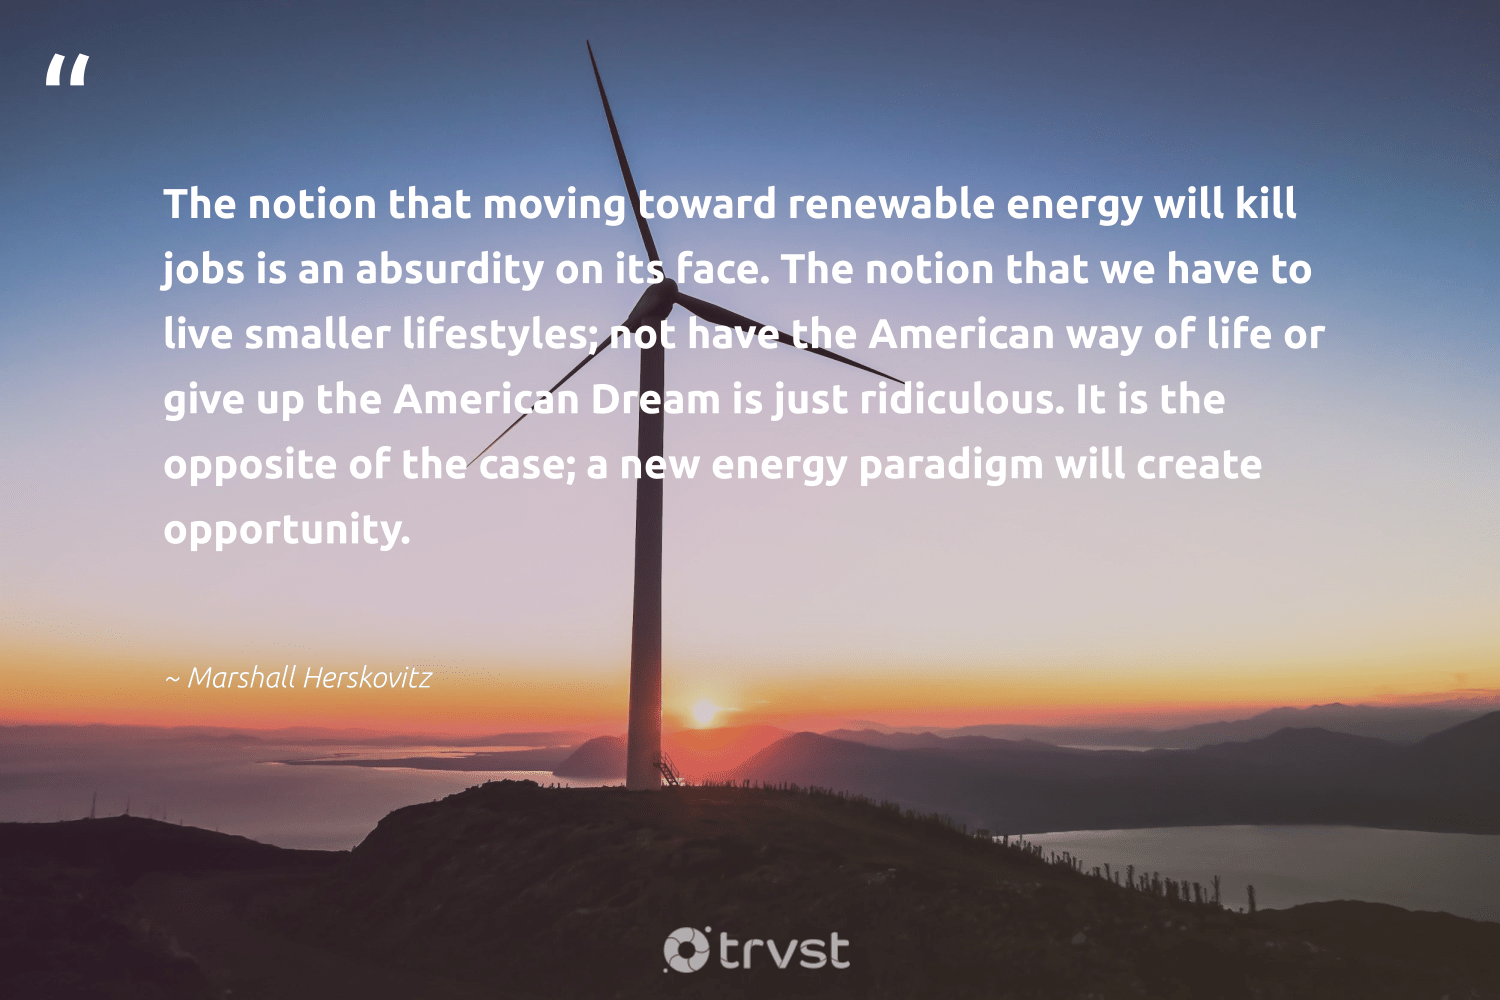 """""""The notion that moving toward renewable energy will kill jobs is an absurdity on its face. The notion that we have to live smaller lifestyles; not have the American way of life or give up the American Dream is just ridiculous. It is the opposite of the case; a new energy paradigm will create opportunity.""""  - Marshall Herskovitz #trvst #quotes #renewableenergy #energy #renewable #switchfuelenergy #100percentrenewable #climateaction #greenlife #gogreen #cleanenergy #lowcarbon"""